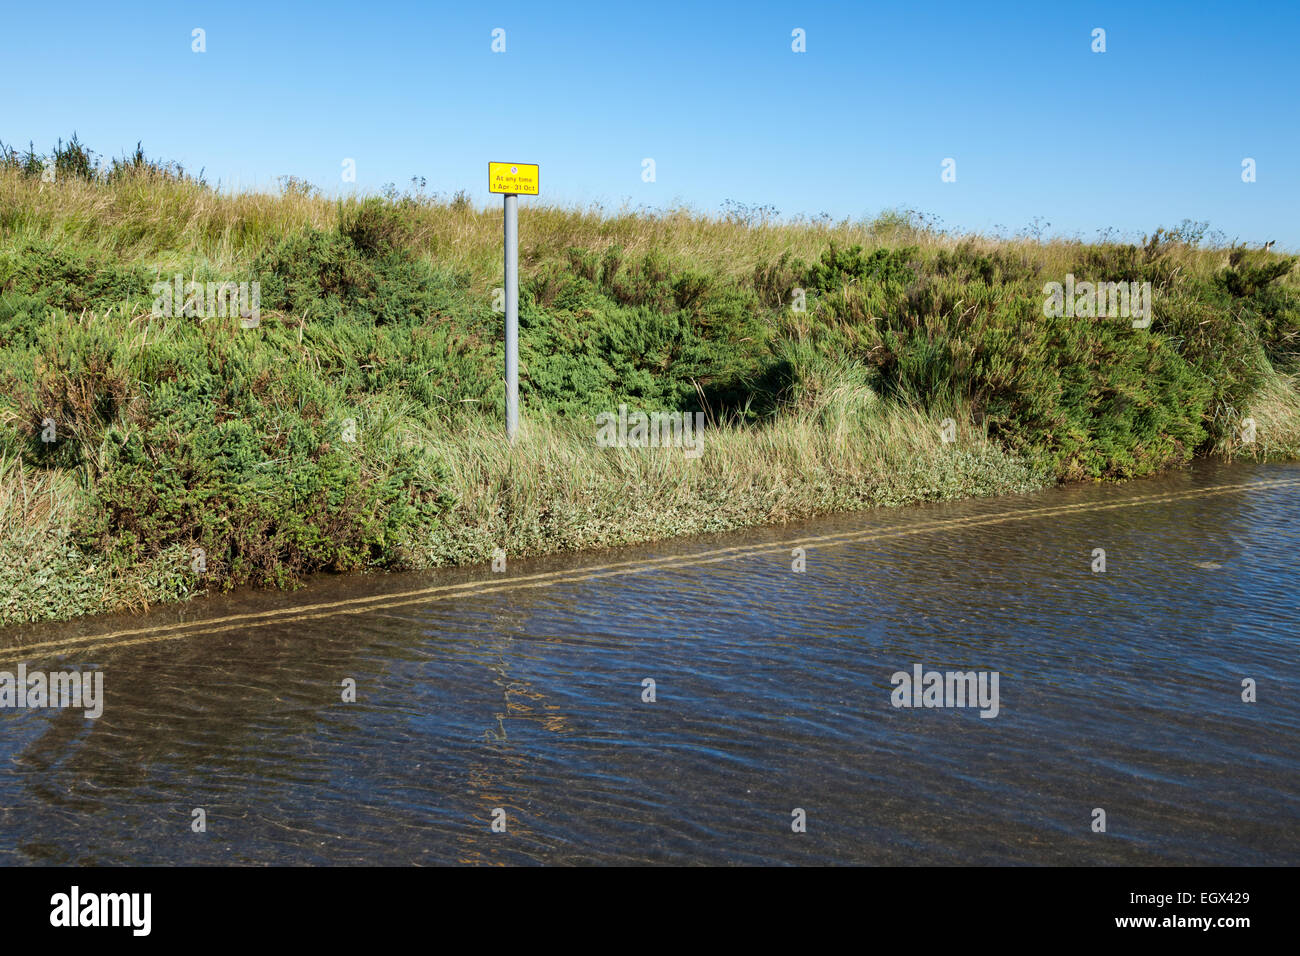 Tidal flooding of the beach road, Brancaster, North Norfolk, England, UK - Stock Image